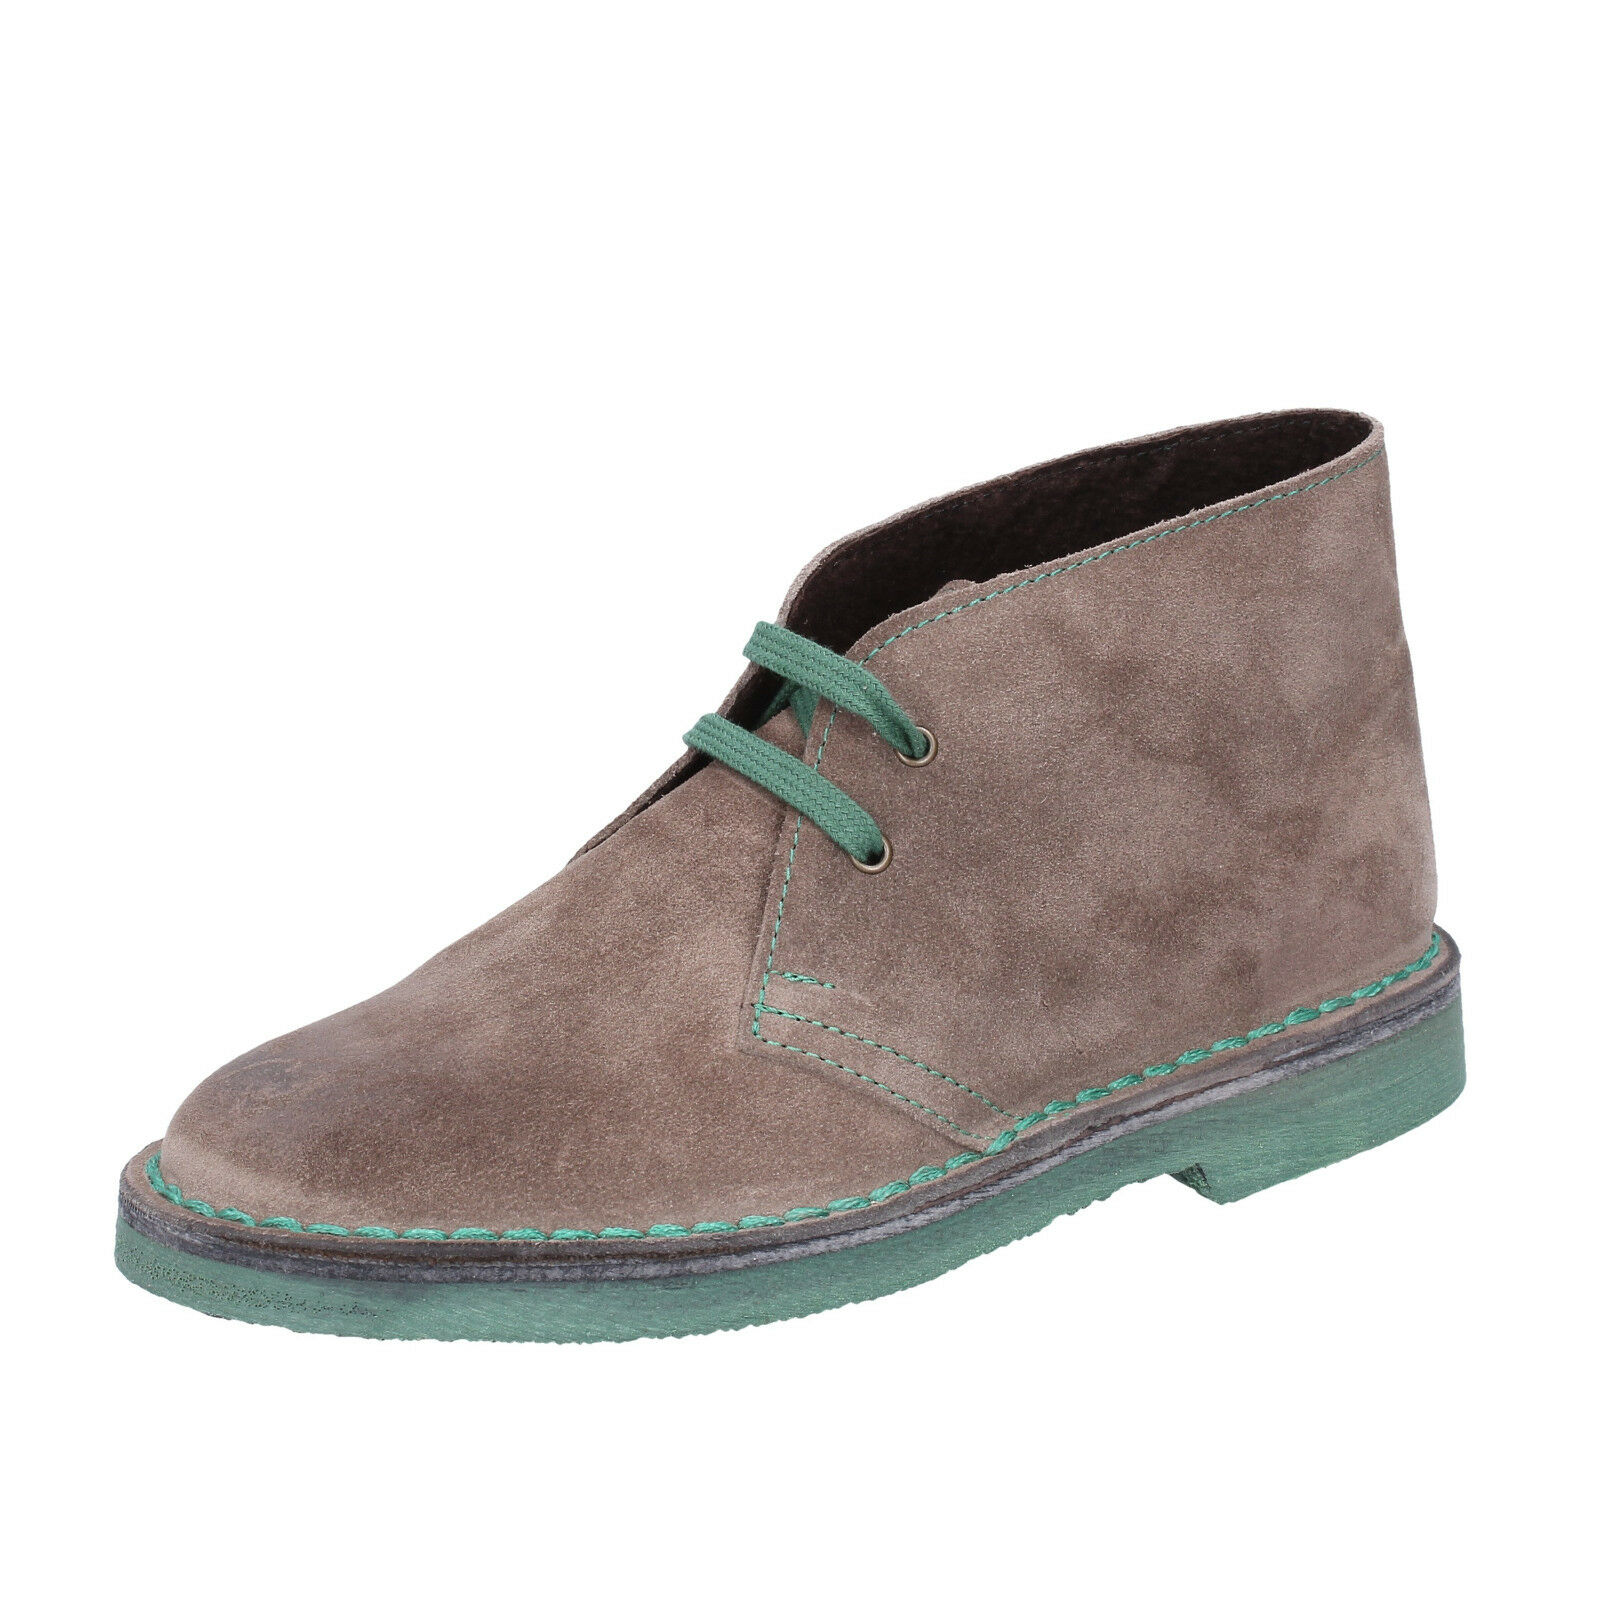 Womens shoes KEPS BY CORAF 3 (EU 36) desert boots beige green suede BX676-36